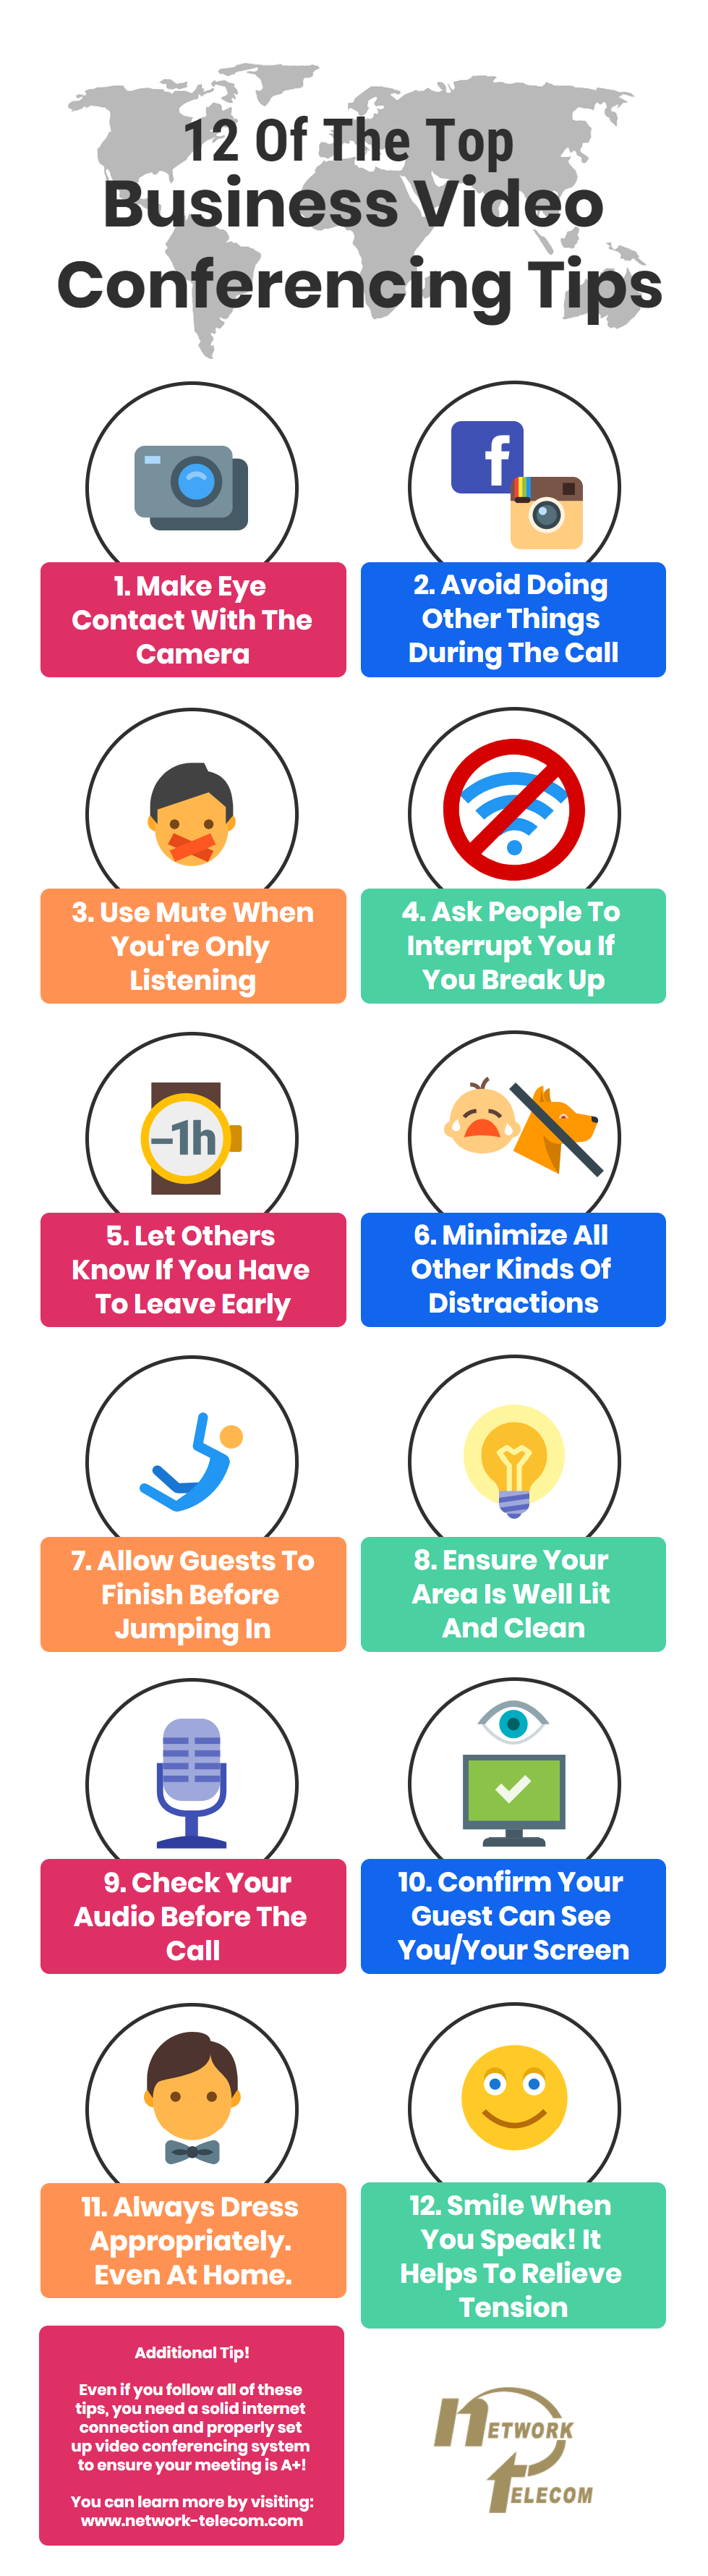 Top 10 Video Conferencing Tips Infographic